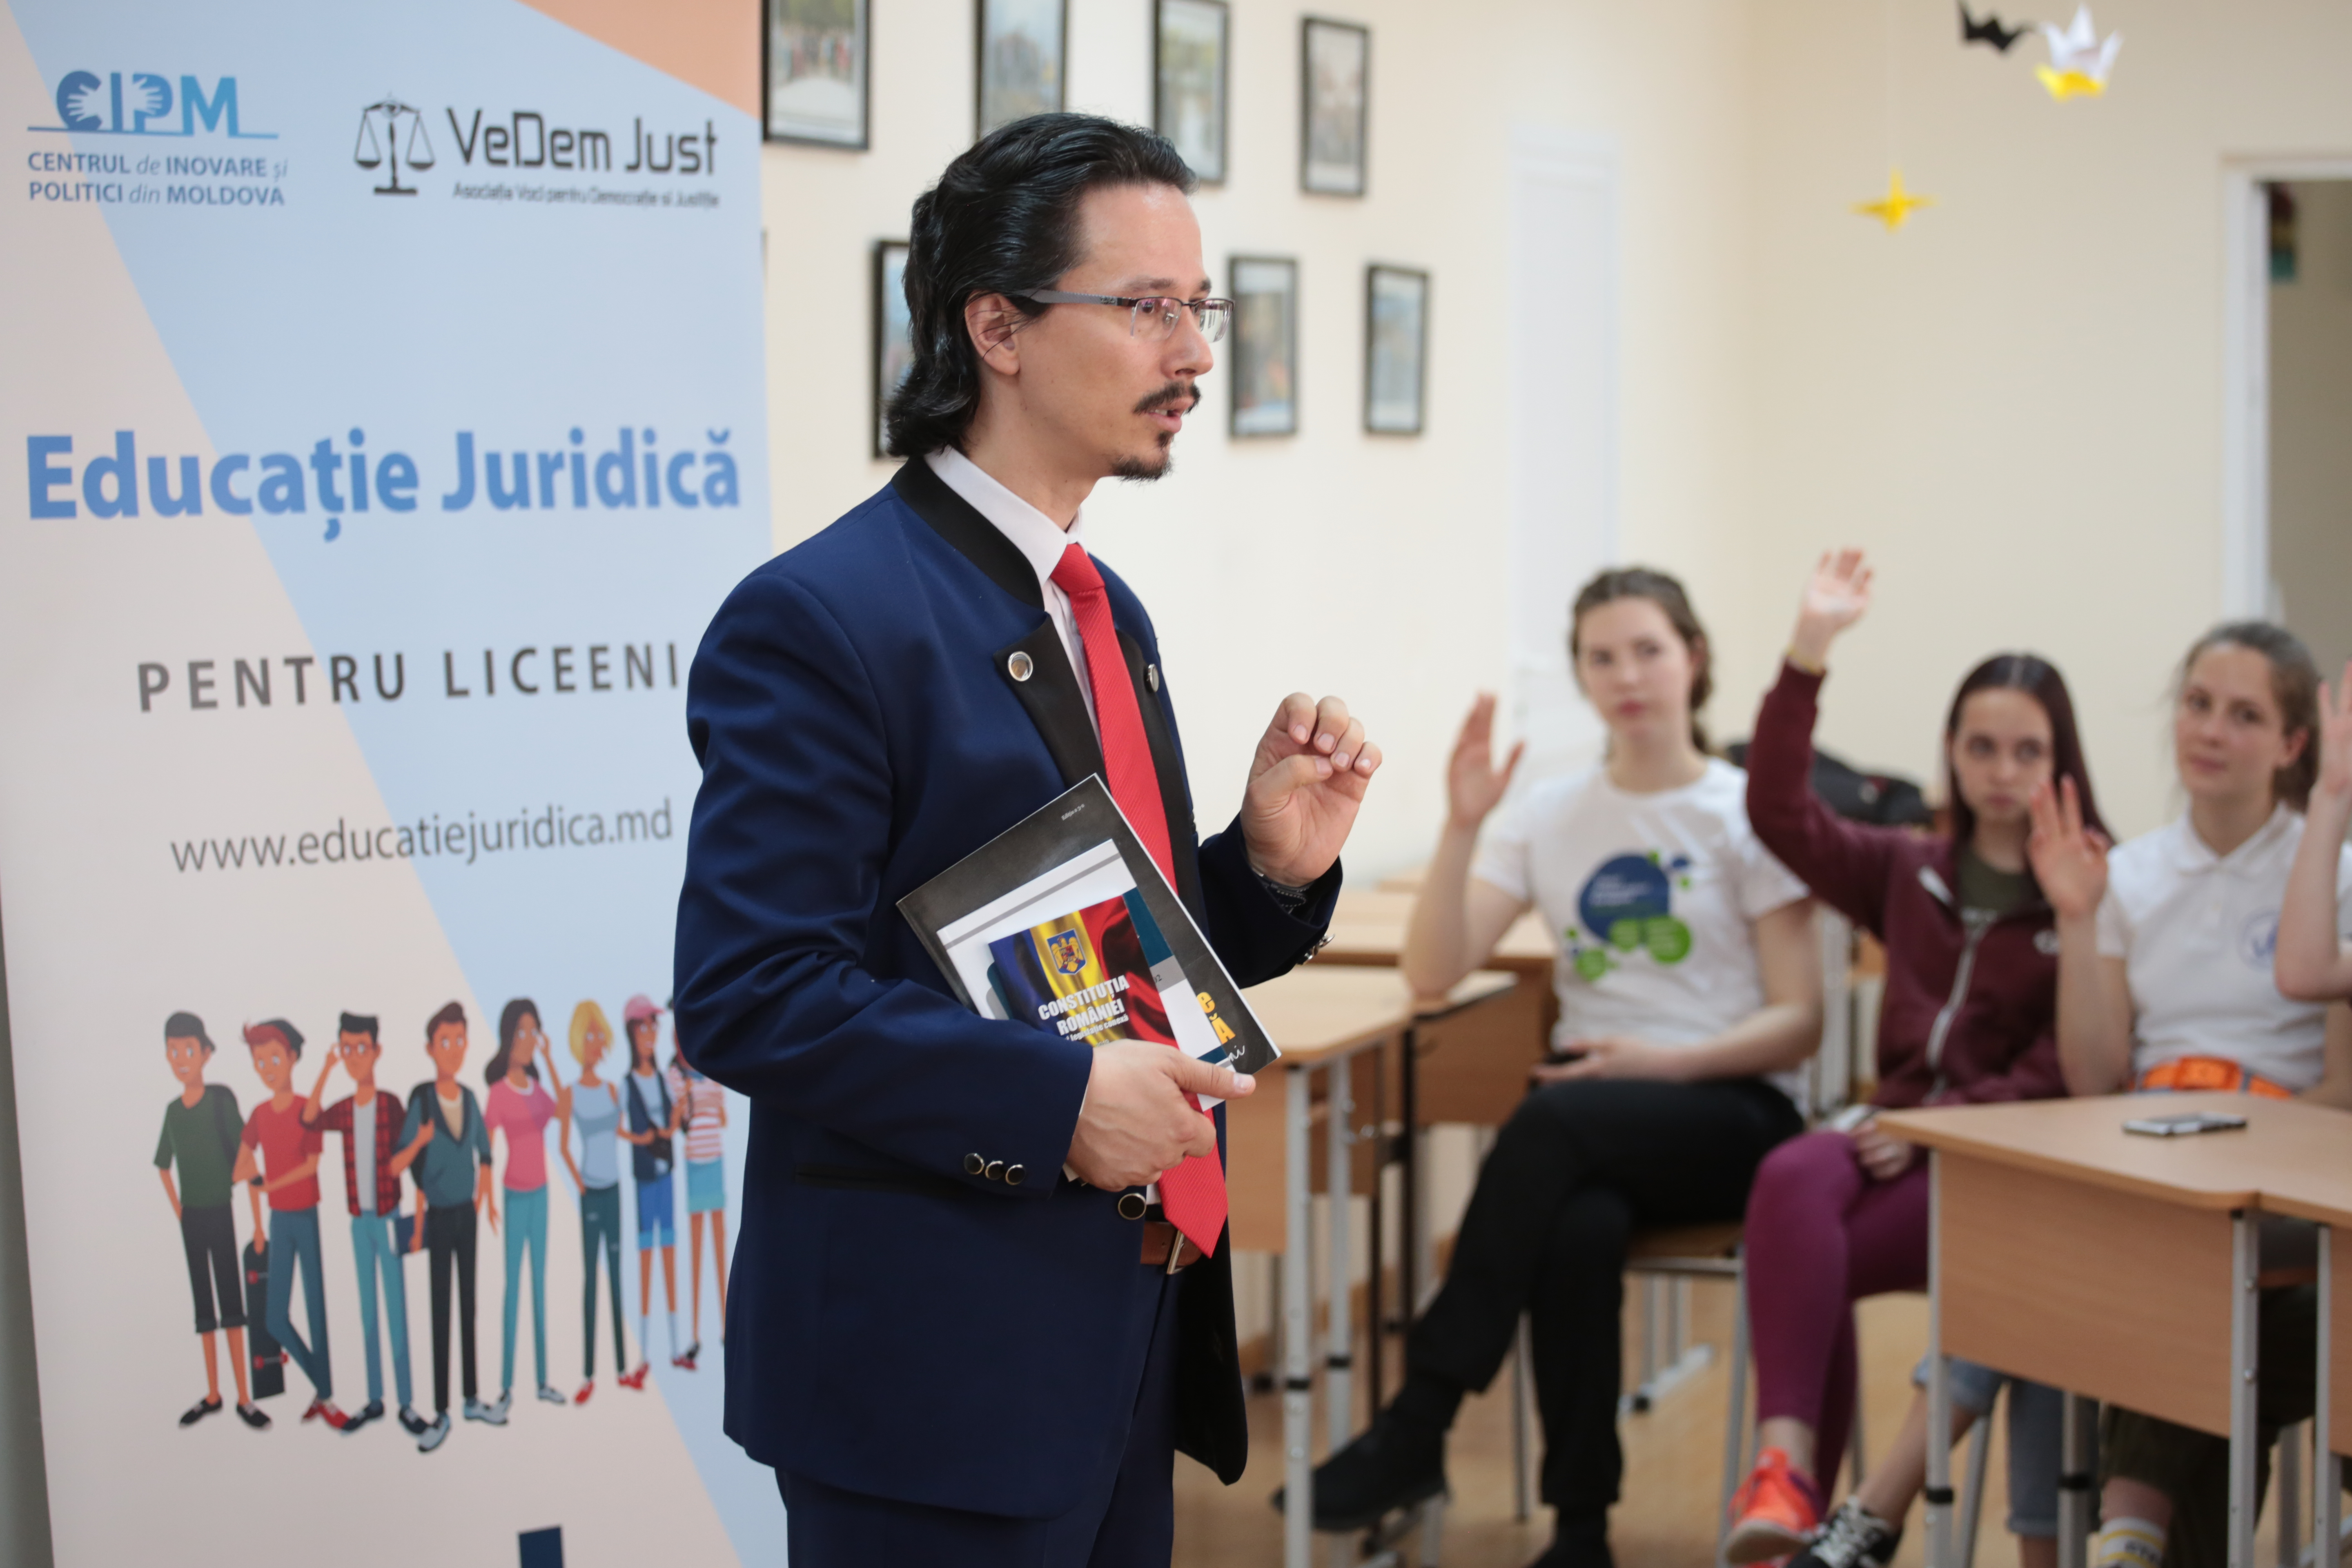 Legal Education Innovators seeding respect for laws for younger generation